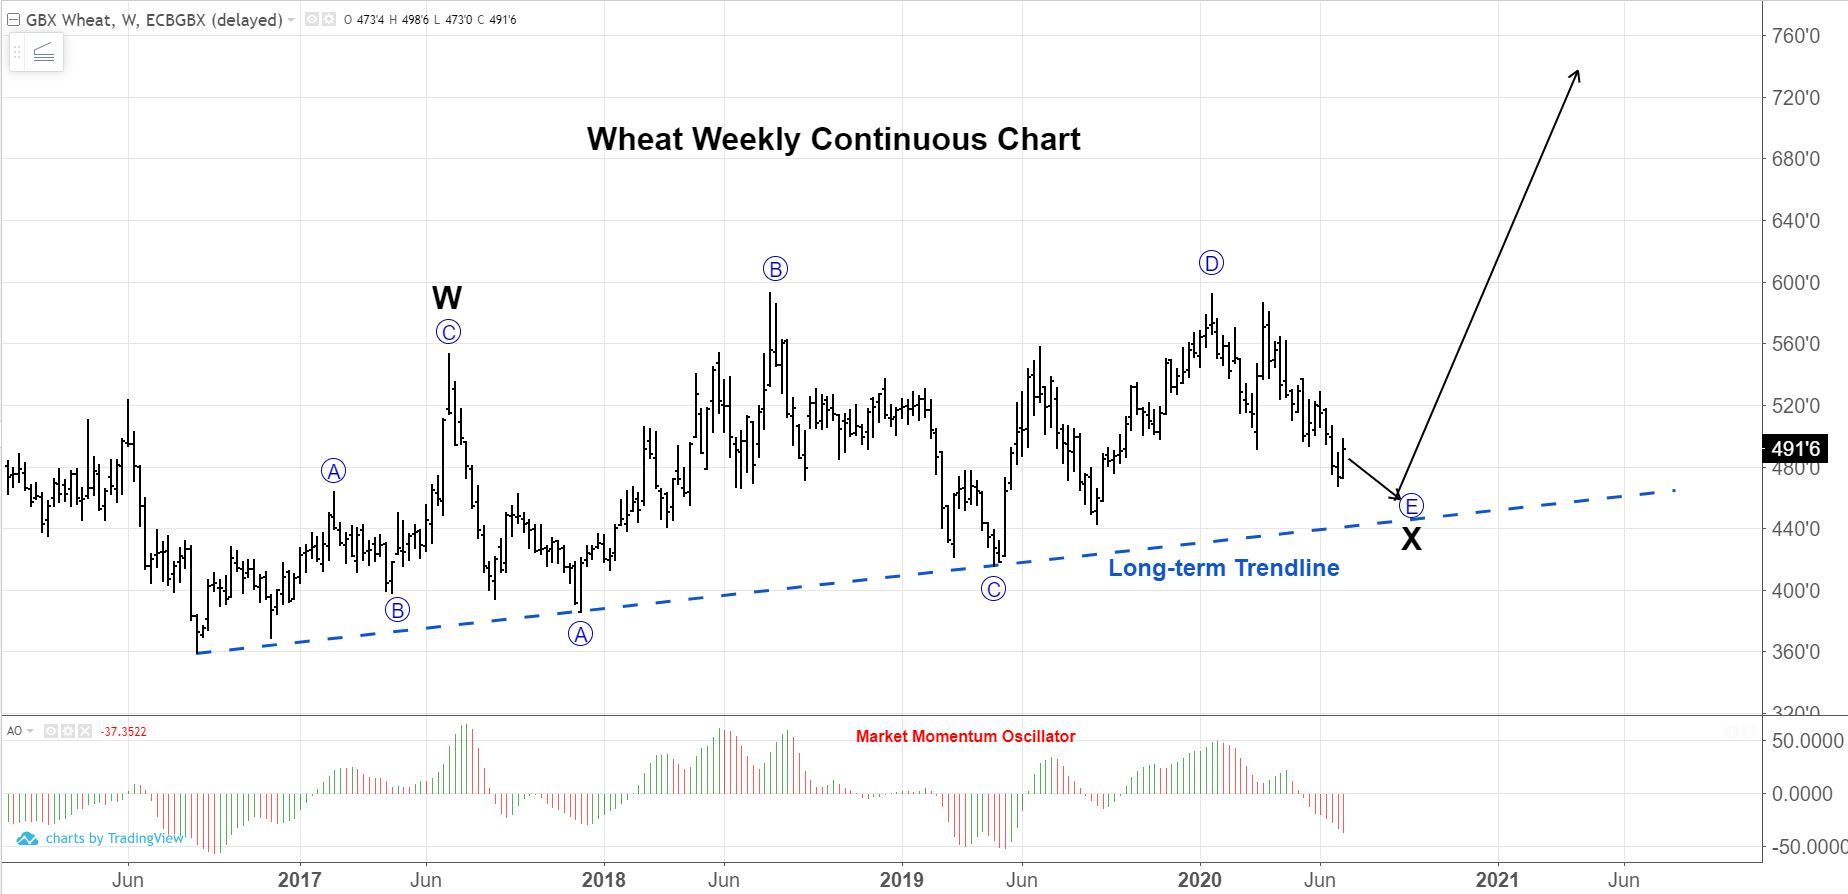 Wheat Weekly Continuous